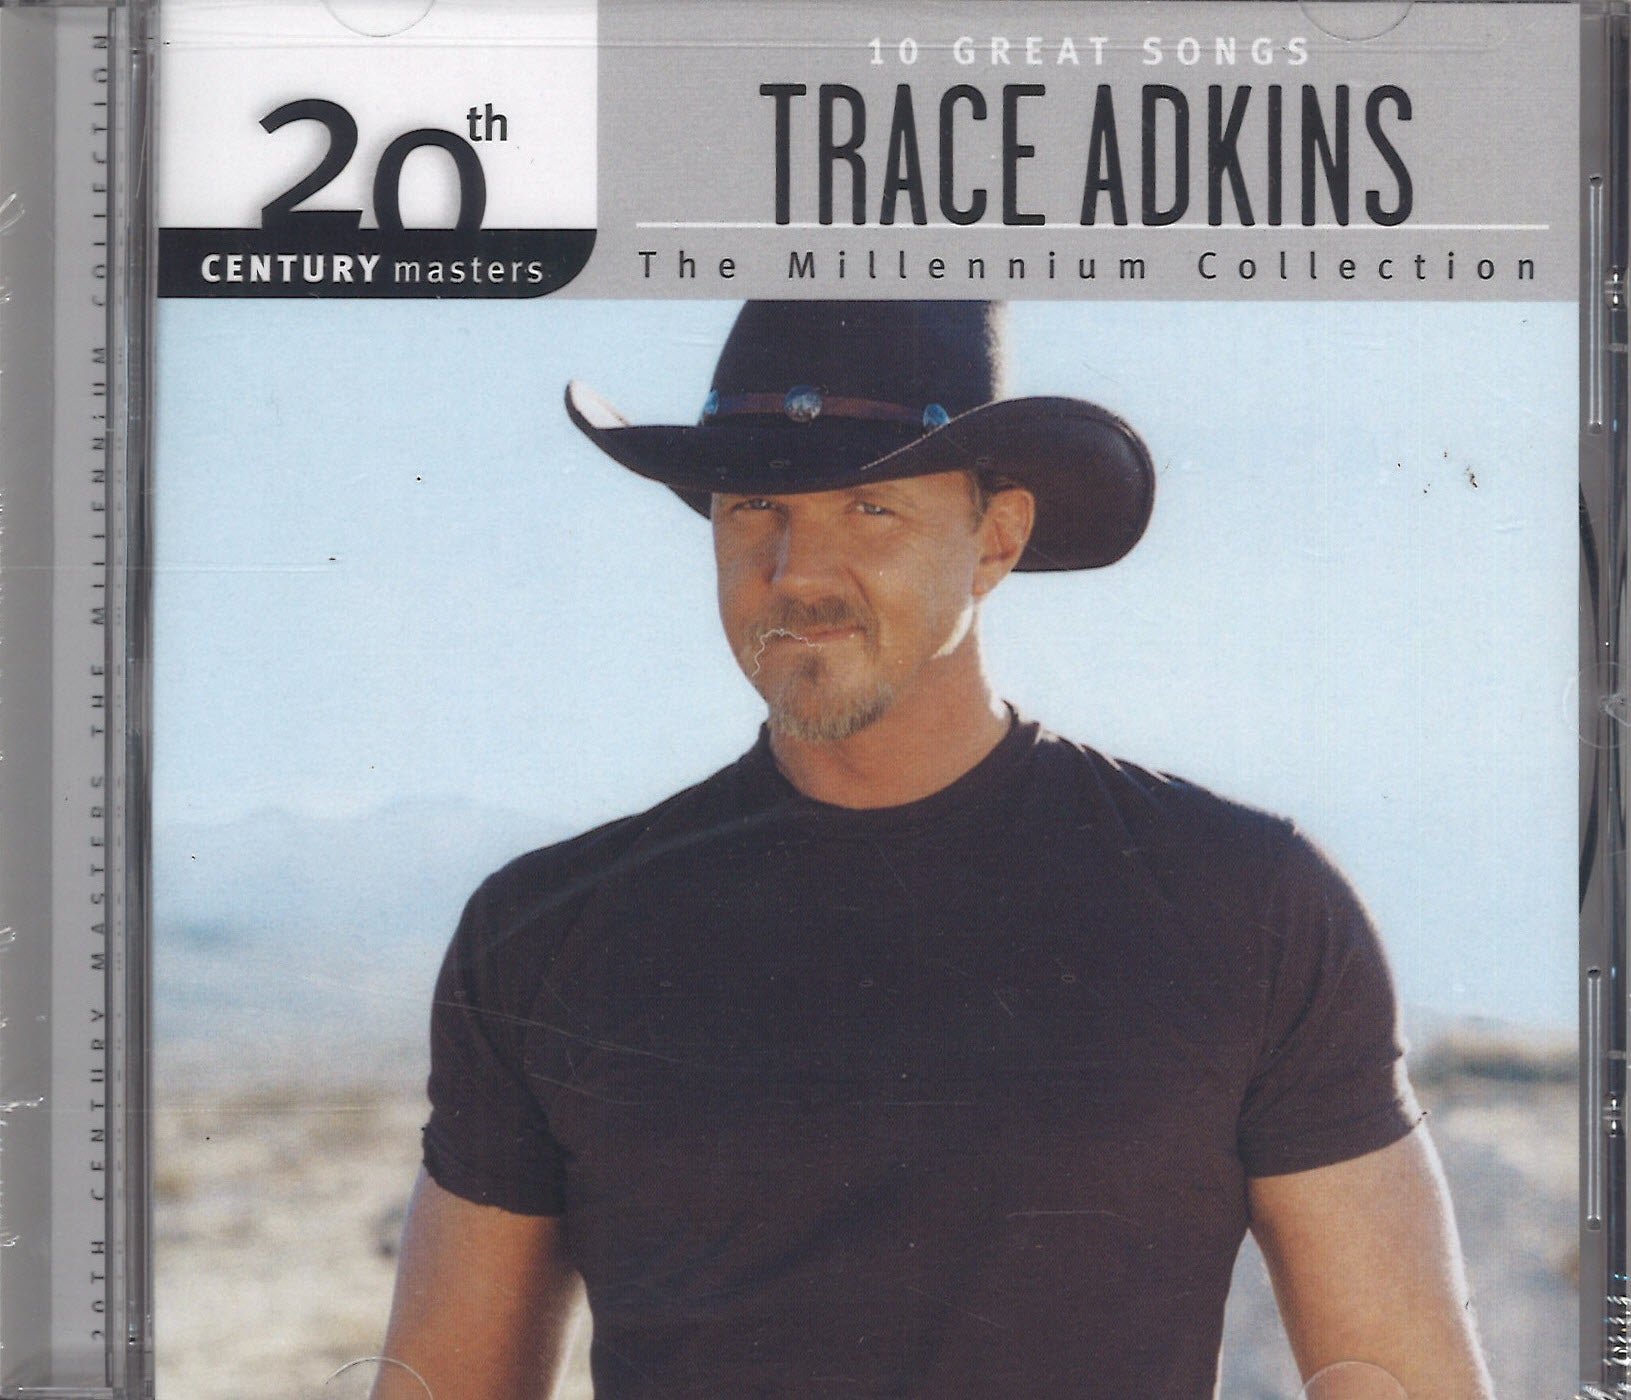 Trace Adkins The Millennium Collection